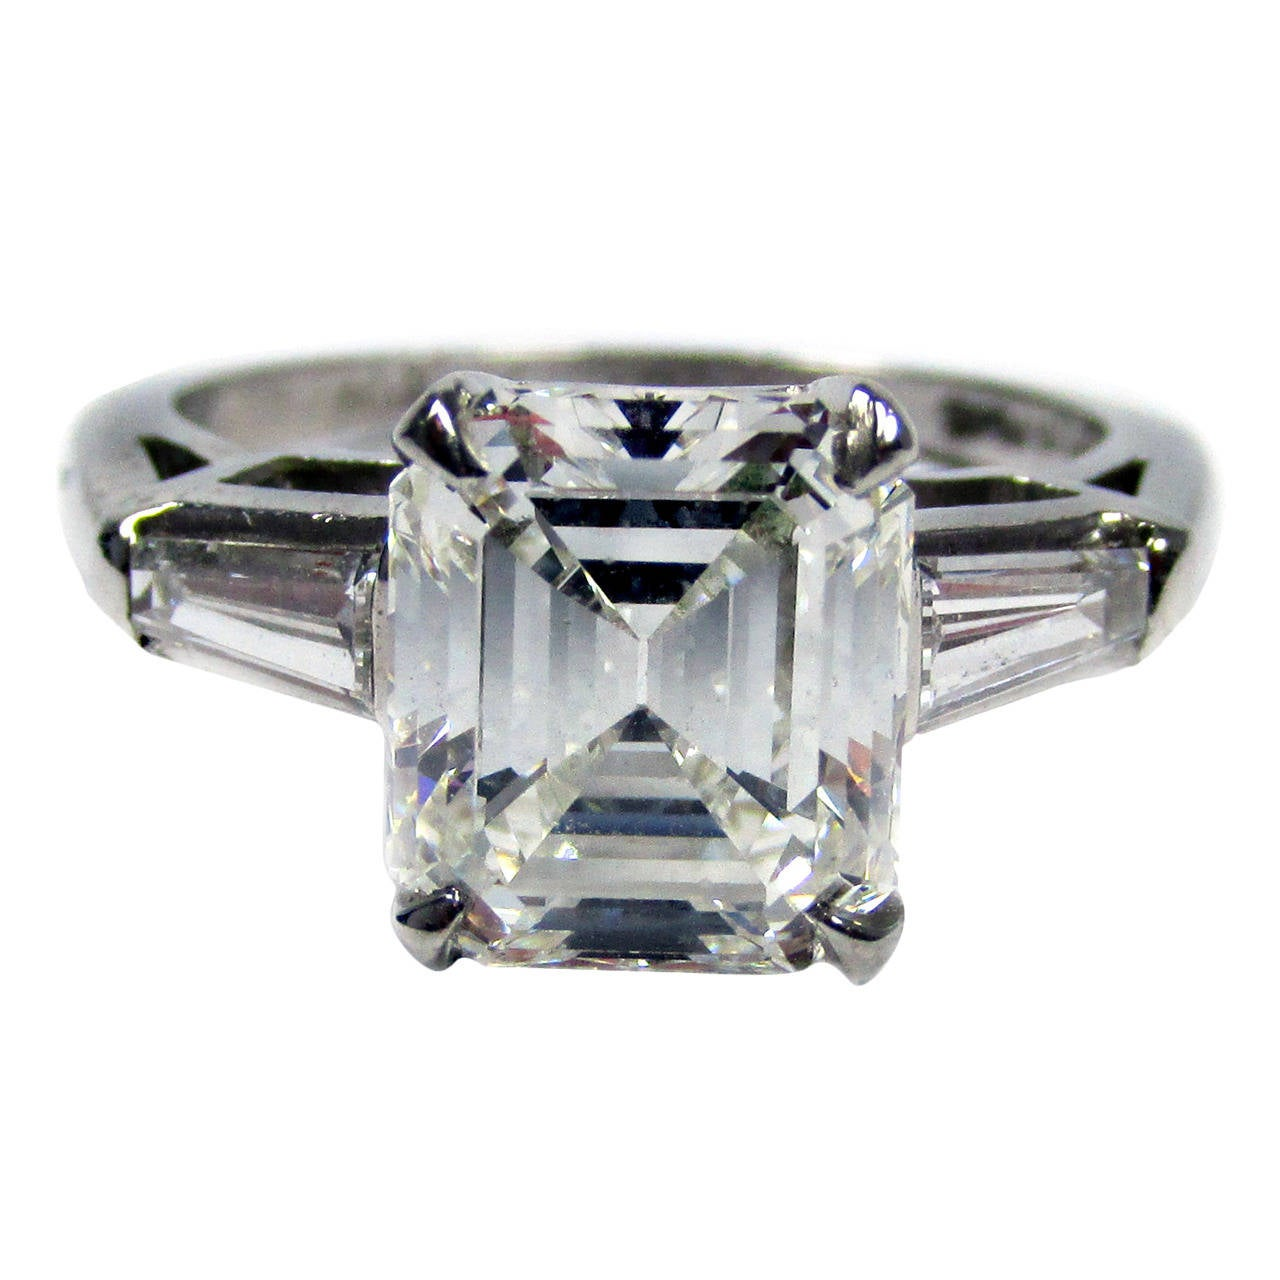 2 50 Carat Emerald Cut Diamond Platinum Ring at 1stdibs